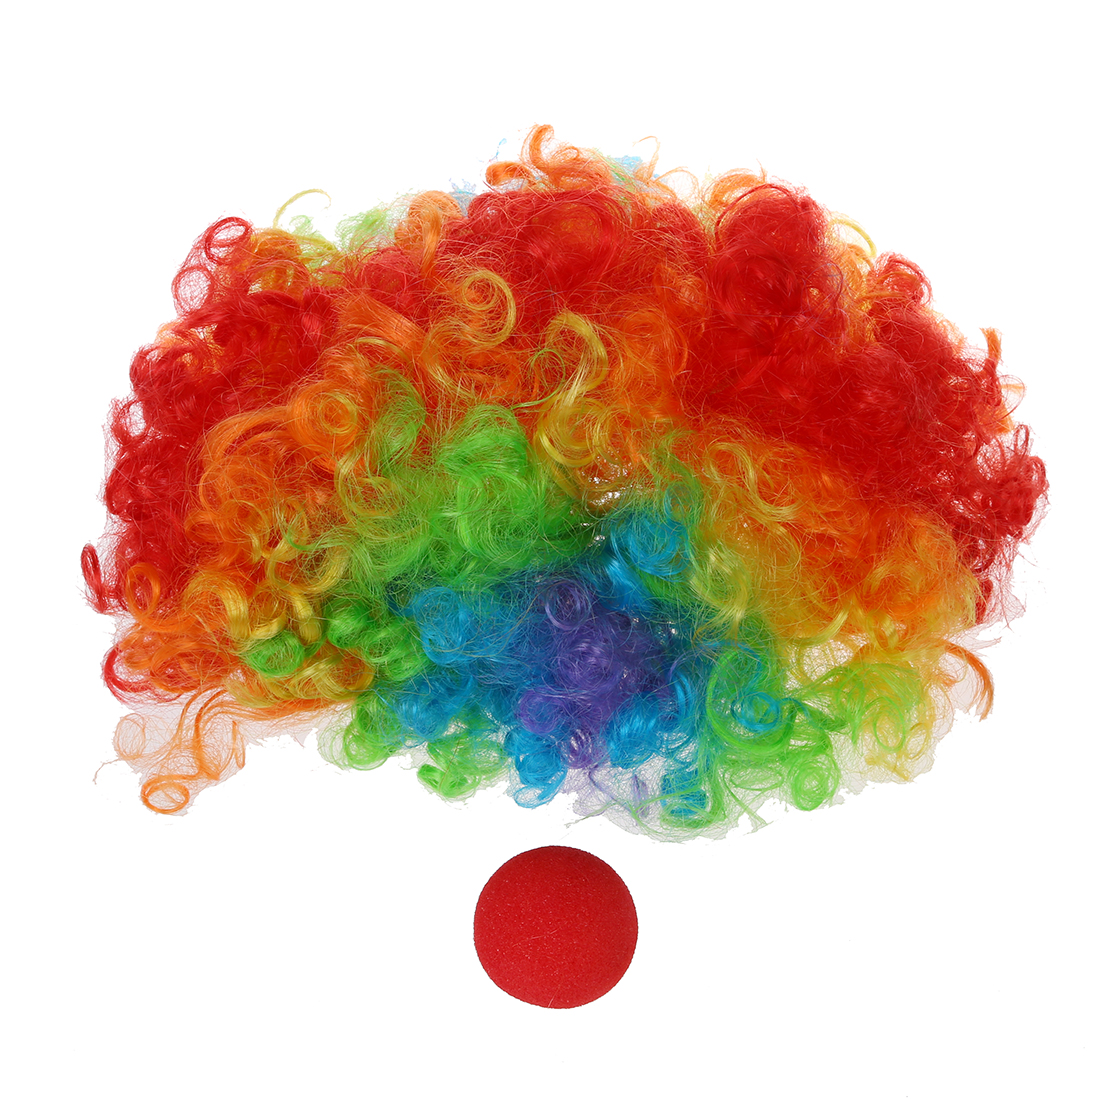 Clown Nose Png (111+ images in Collection) Page 3.